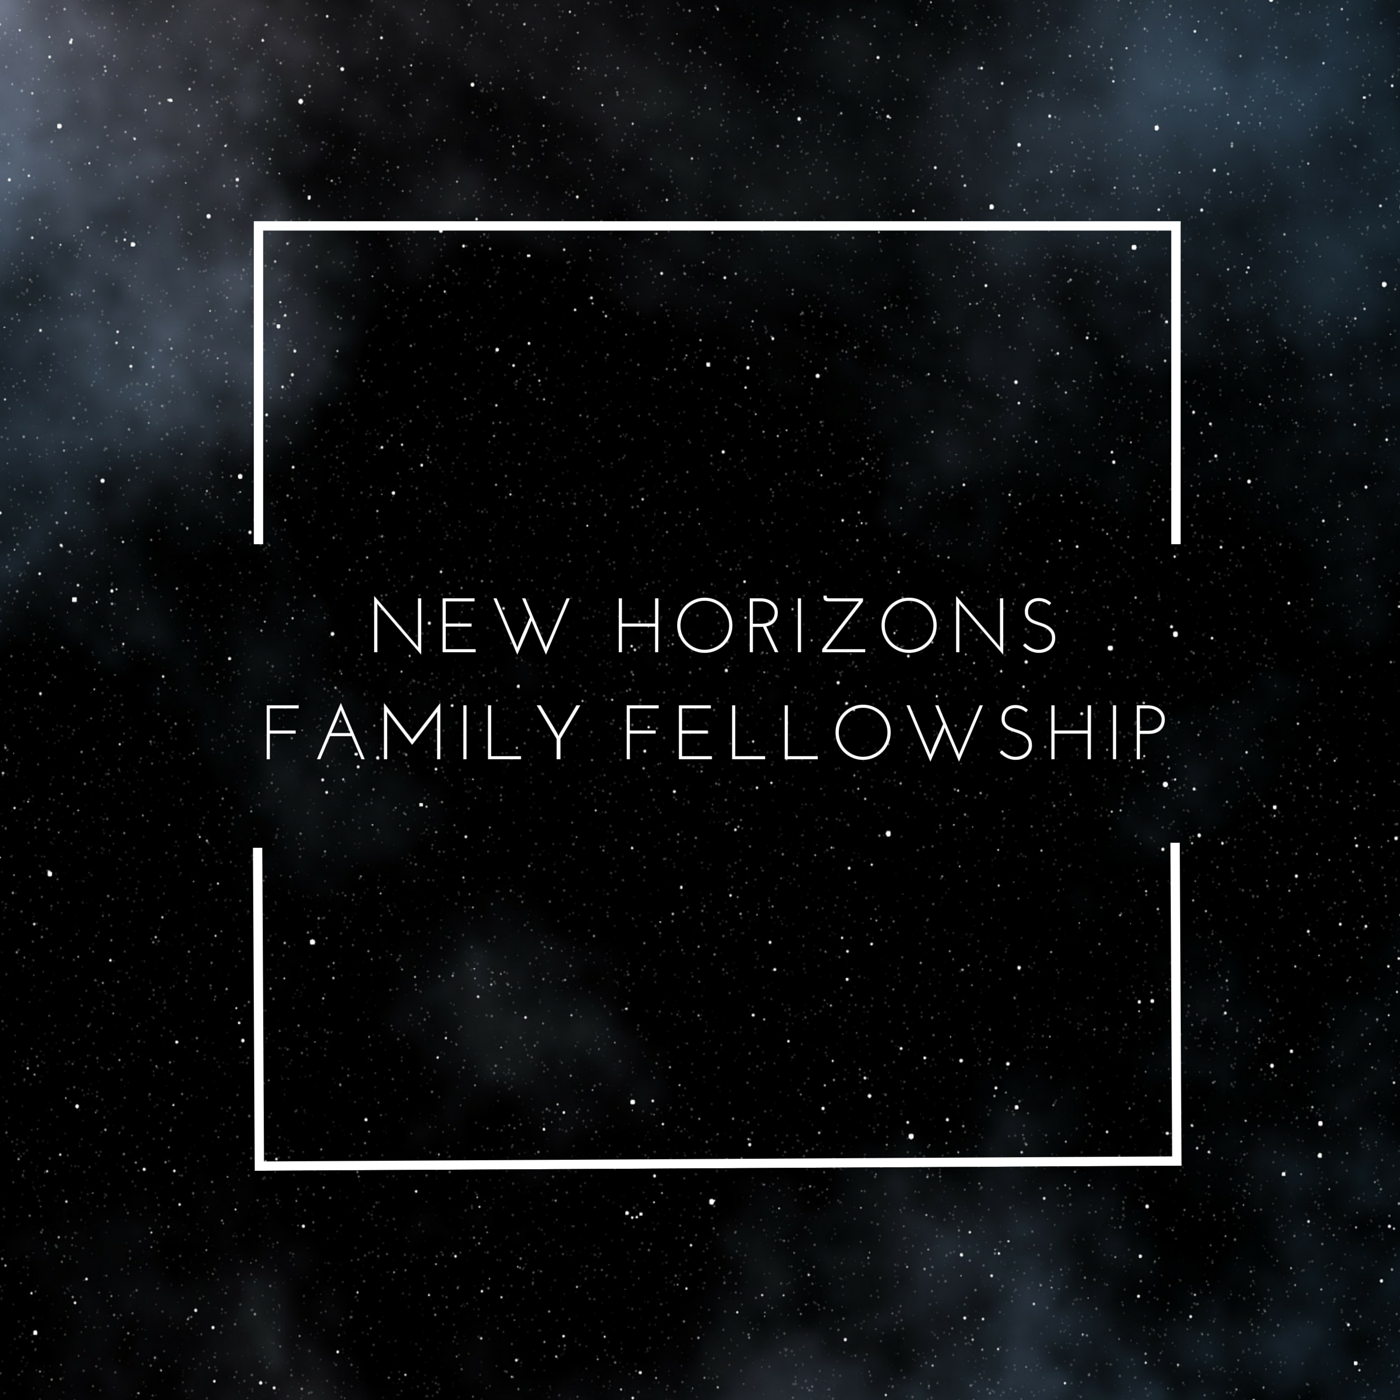 New Horizons Family Fellowship